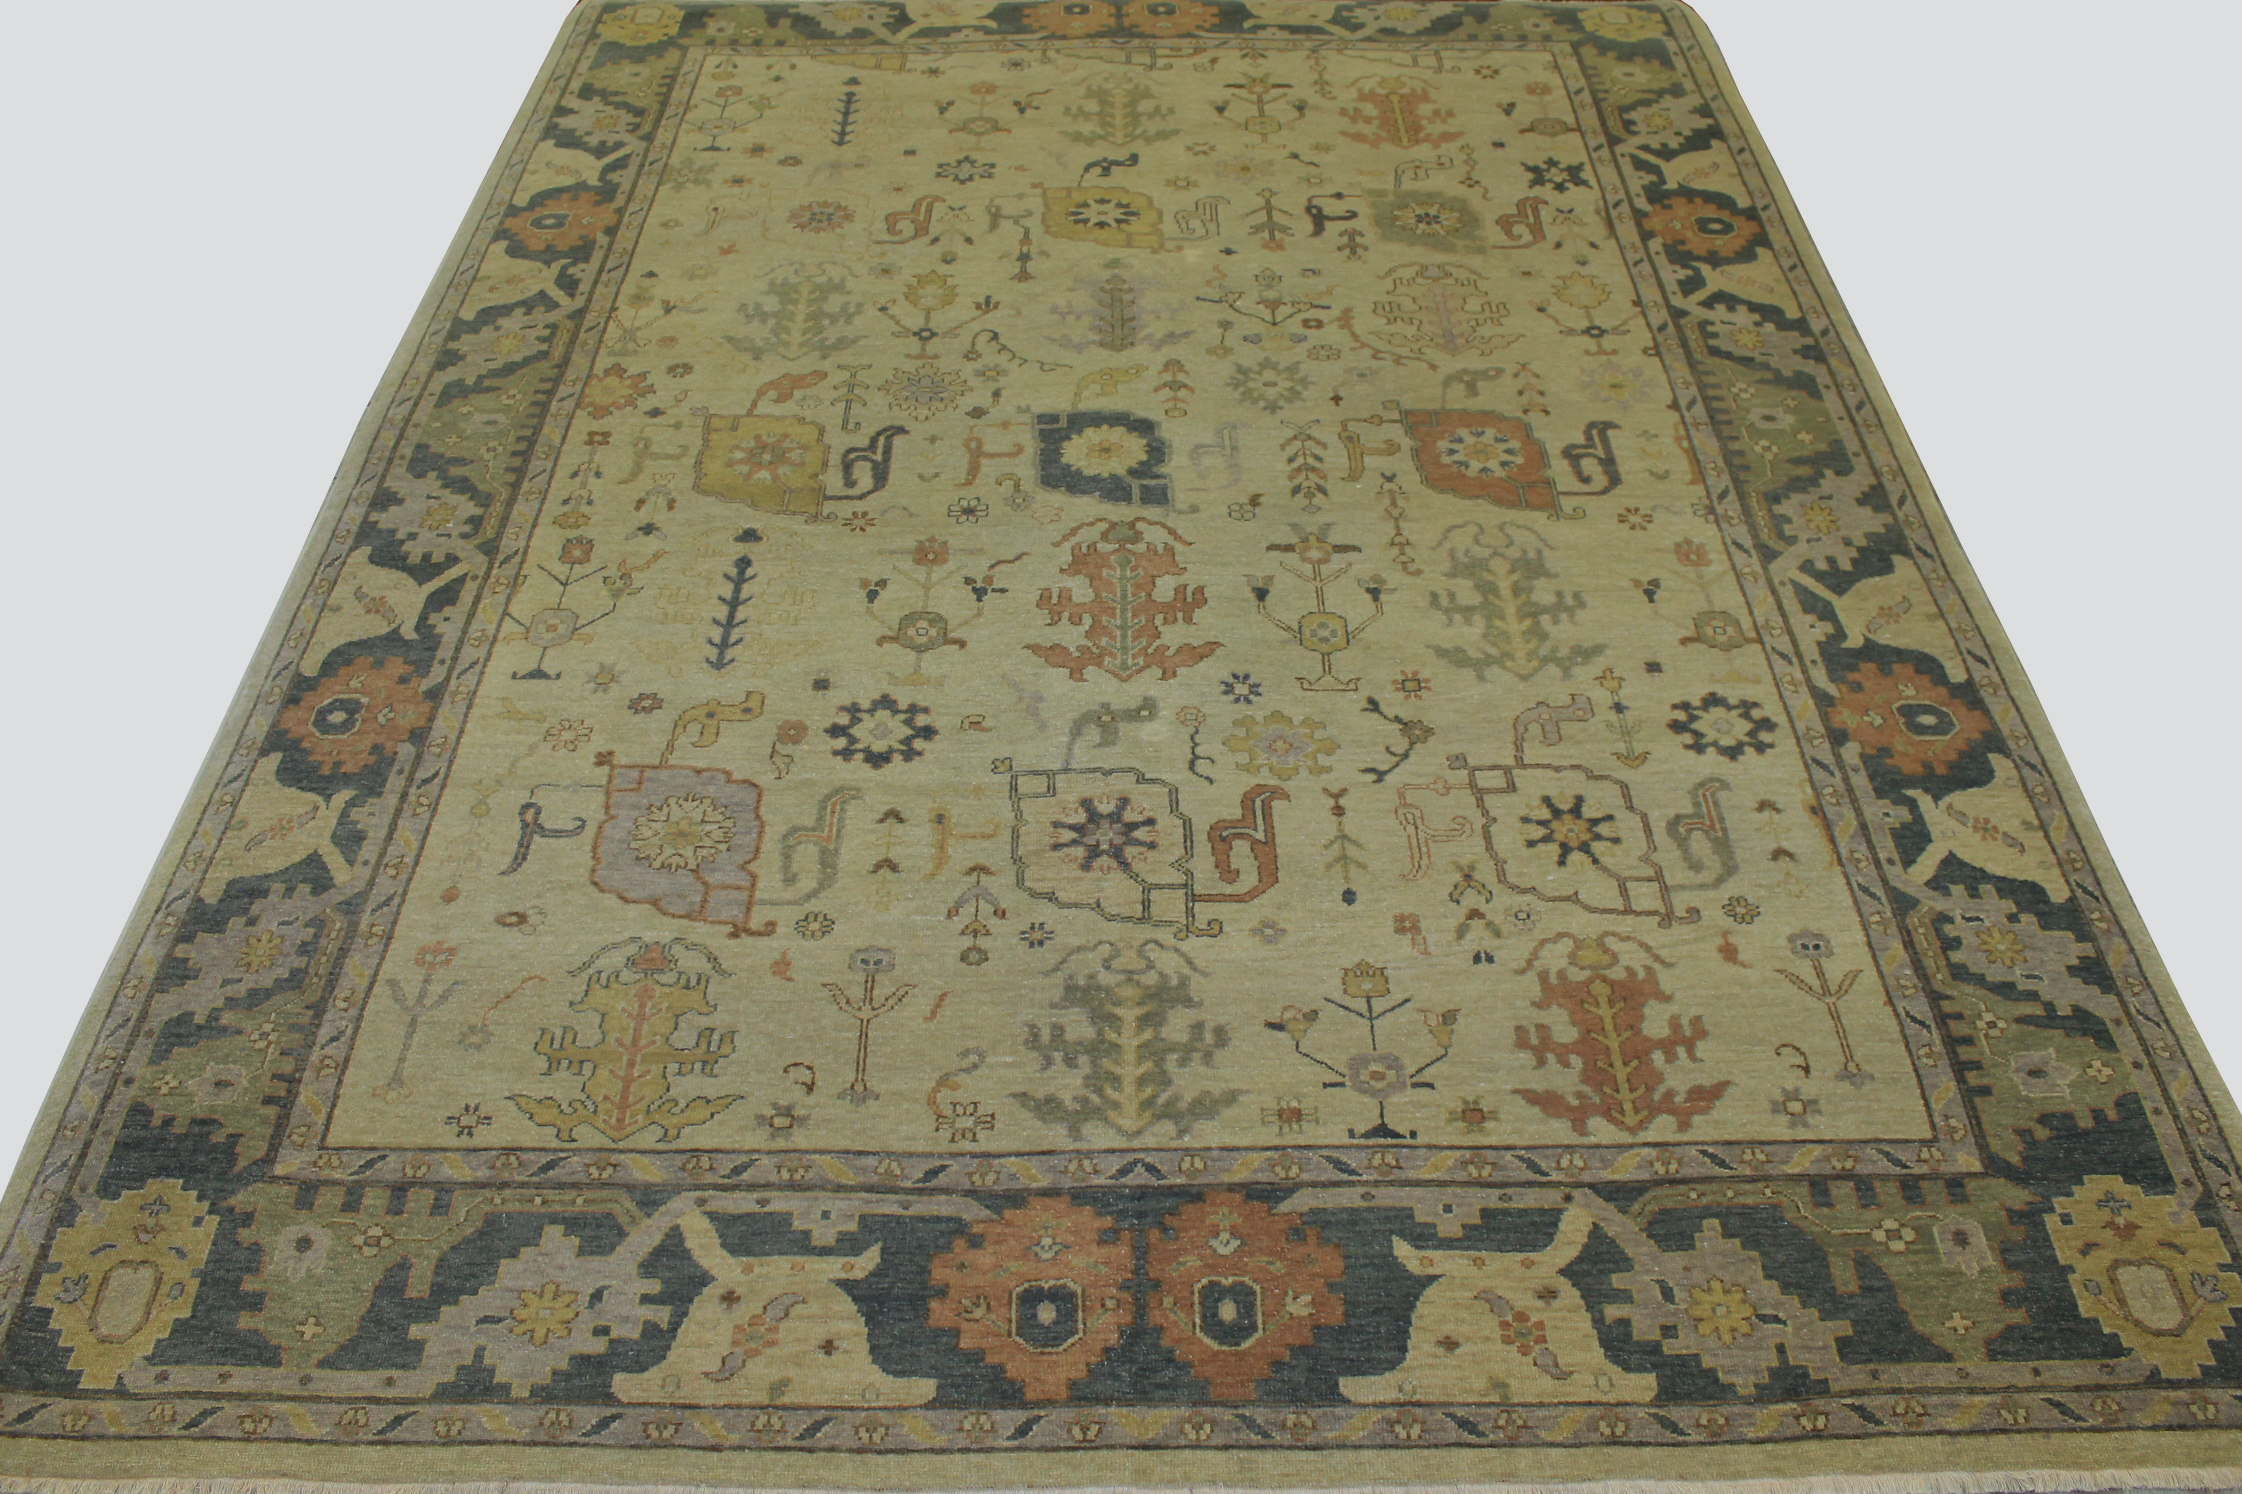 9x12 Oushak Hand Knotted Wool Area Rug - MR15295